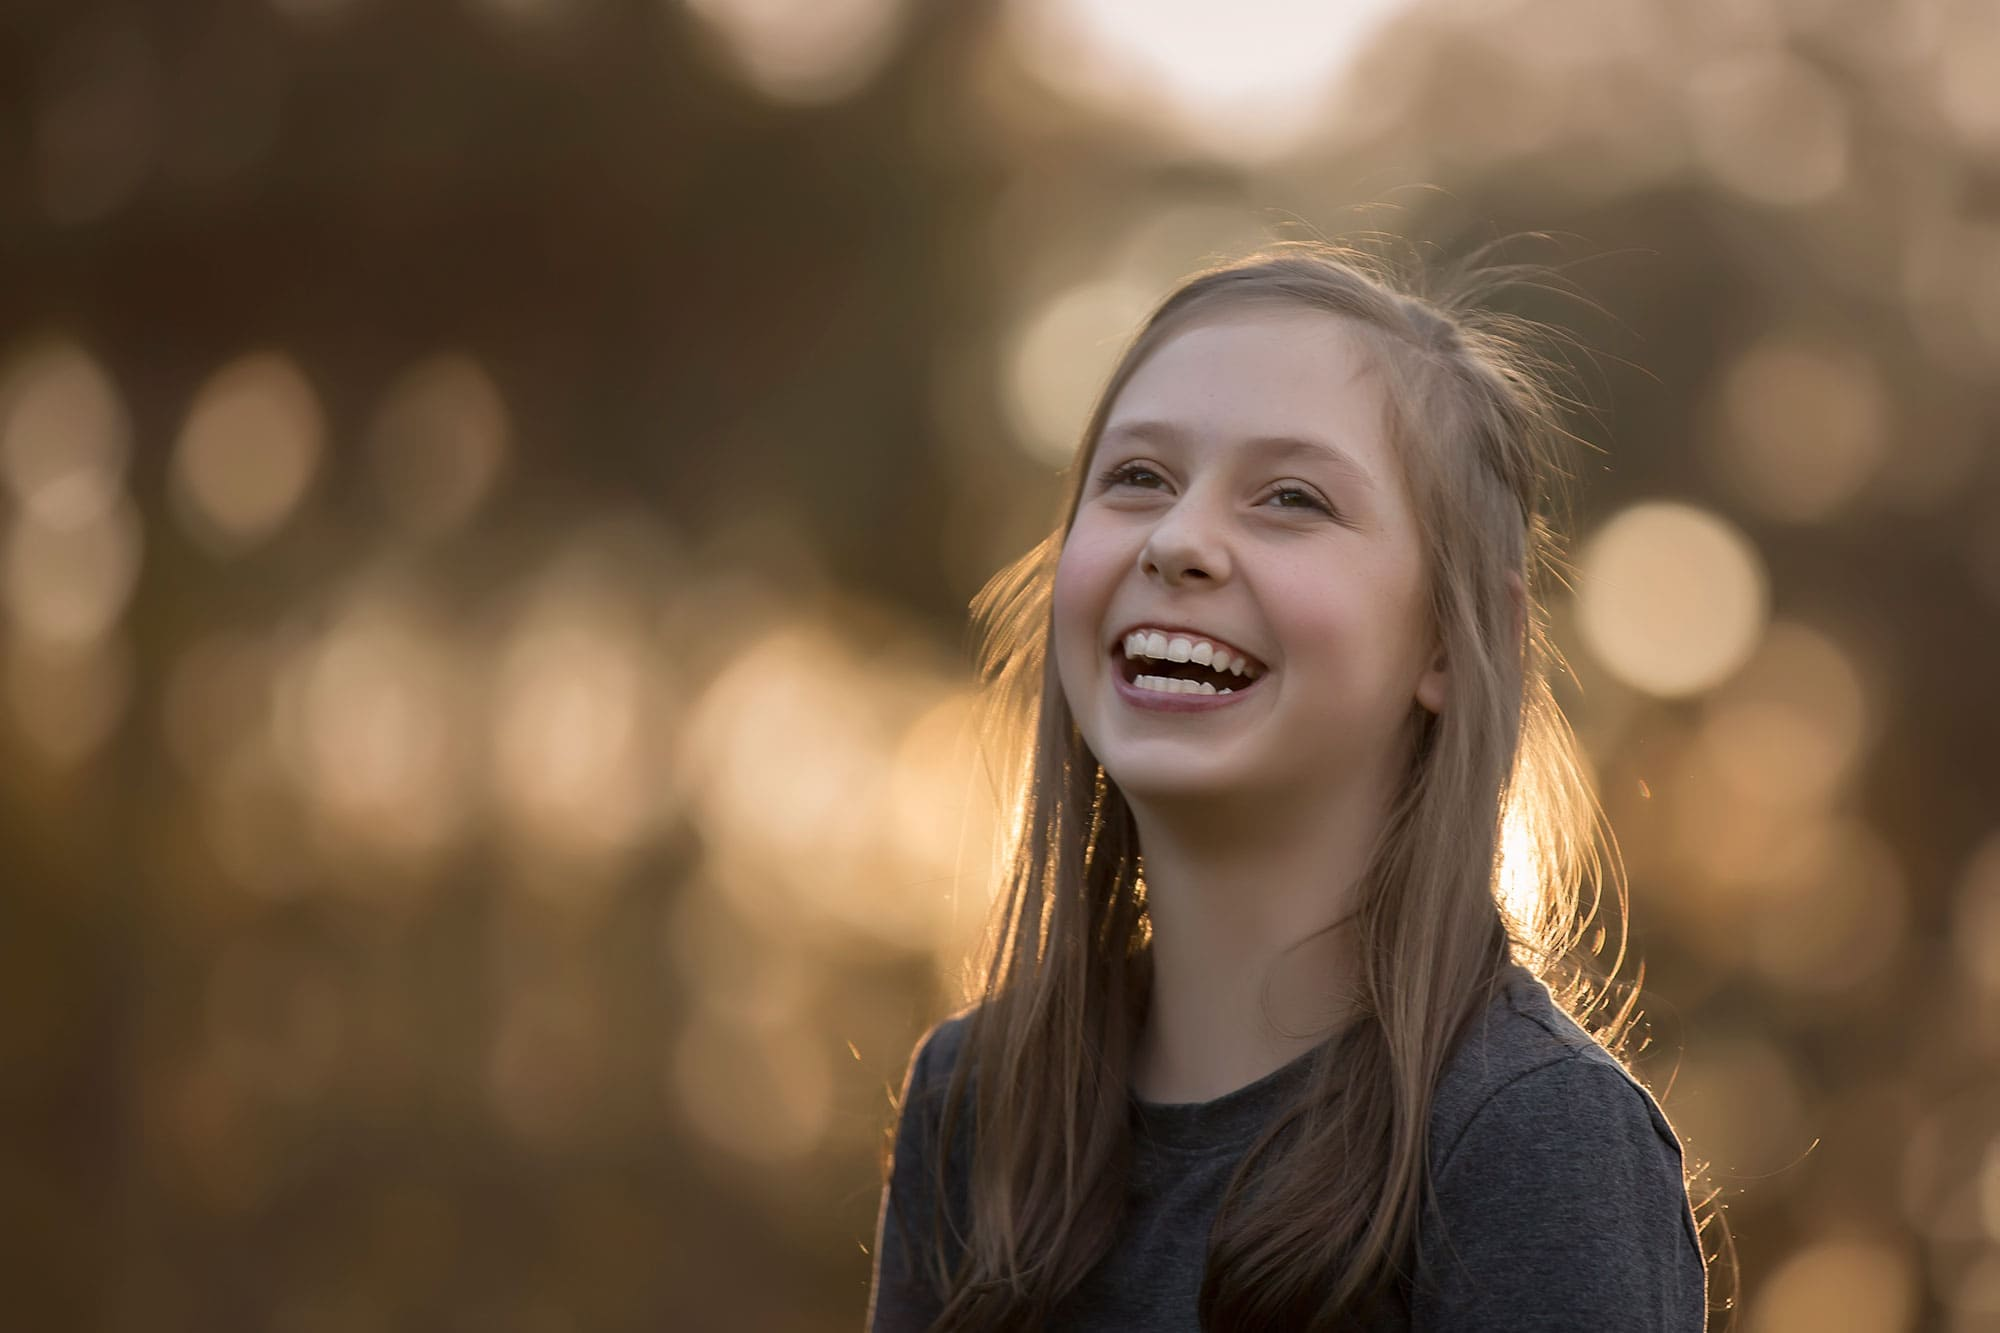 Girl smiling at sunset